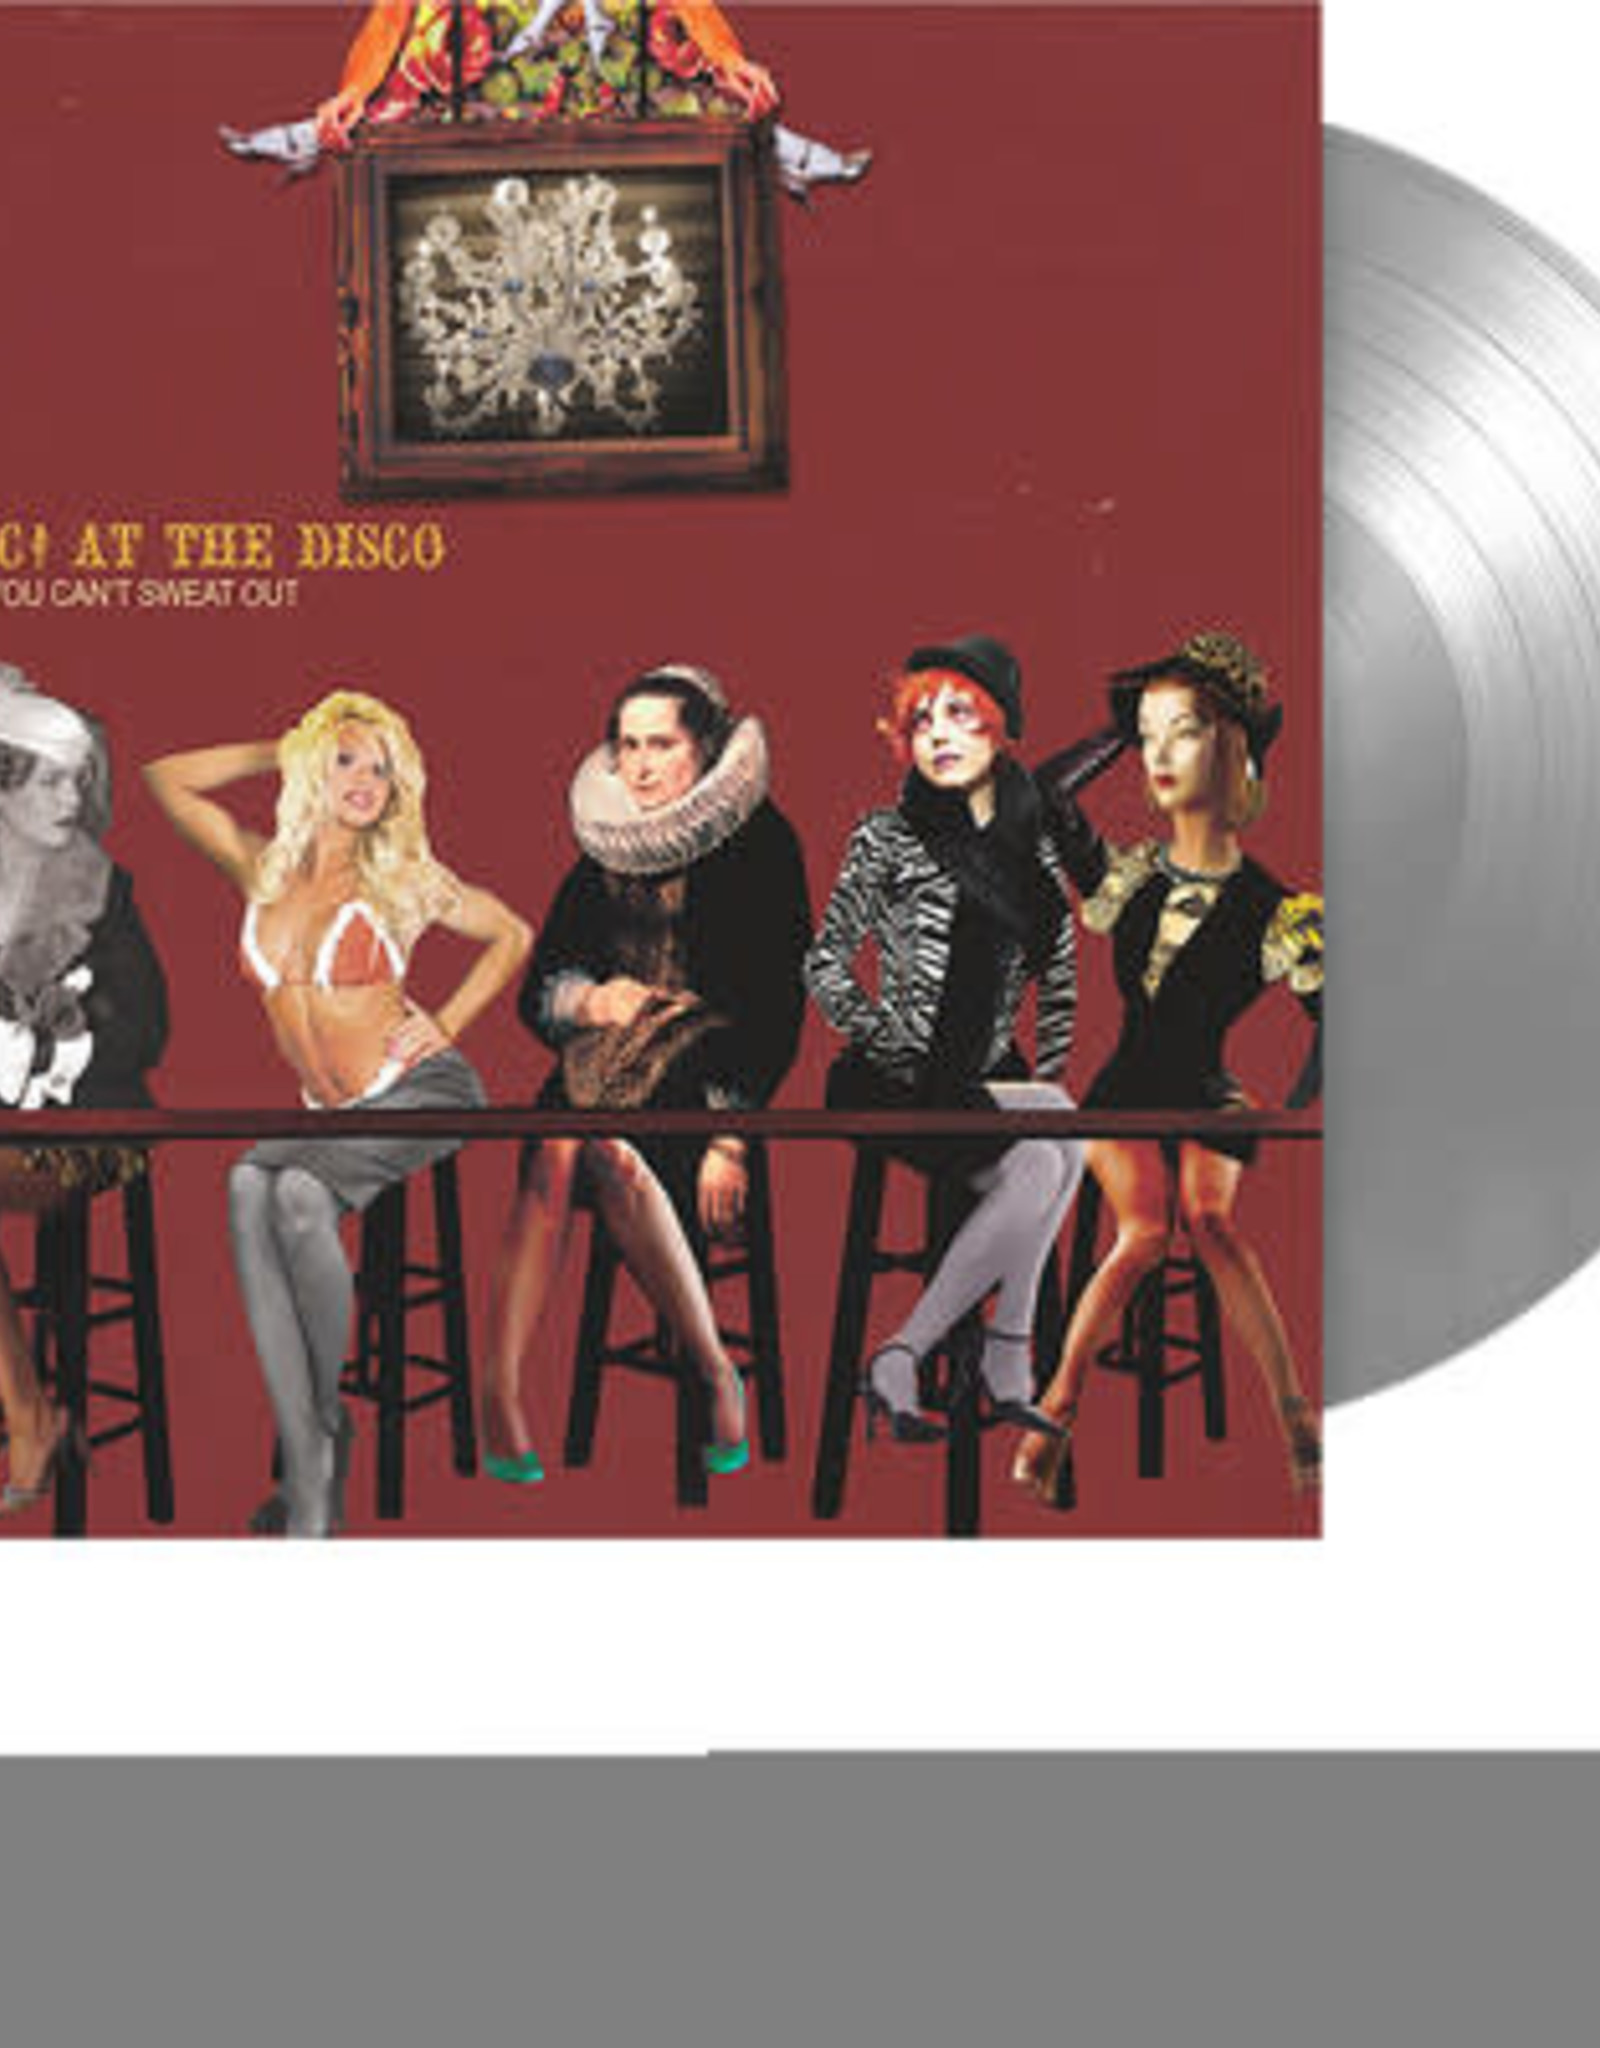 Panic! At the Disco - Fever That You Can't Sweat Out (FBR 25th Anniversary Edition) (Silver Vinyl)